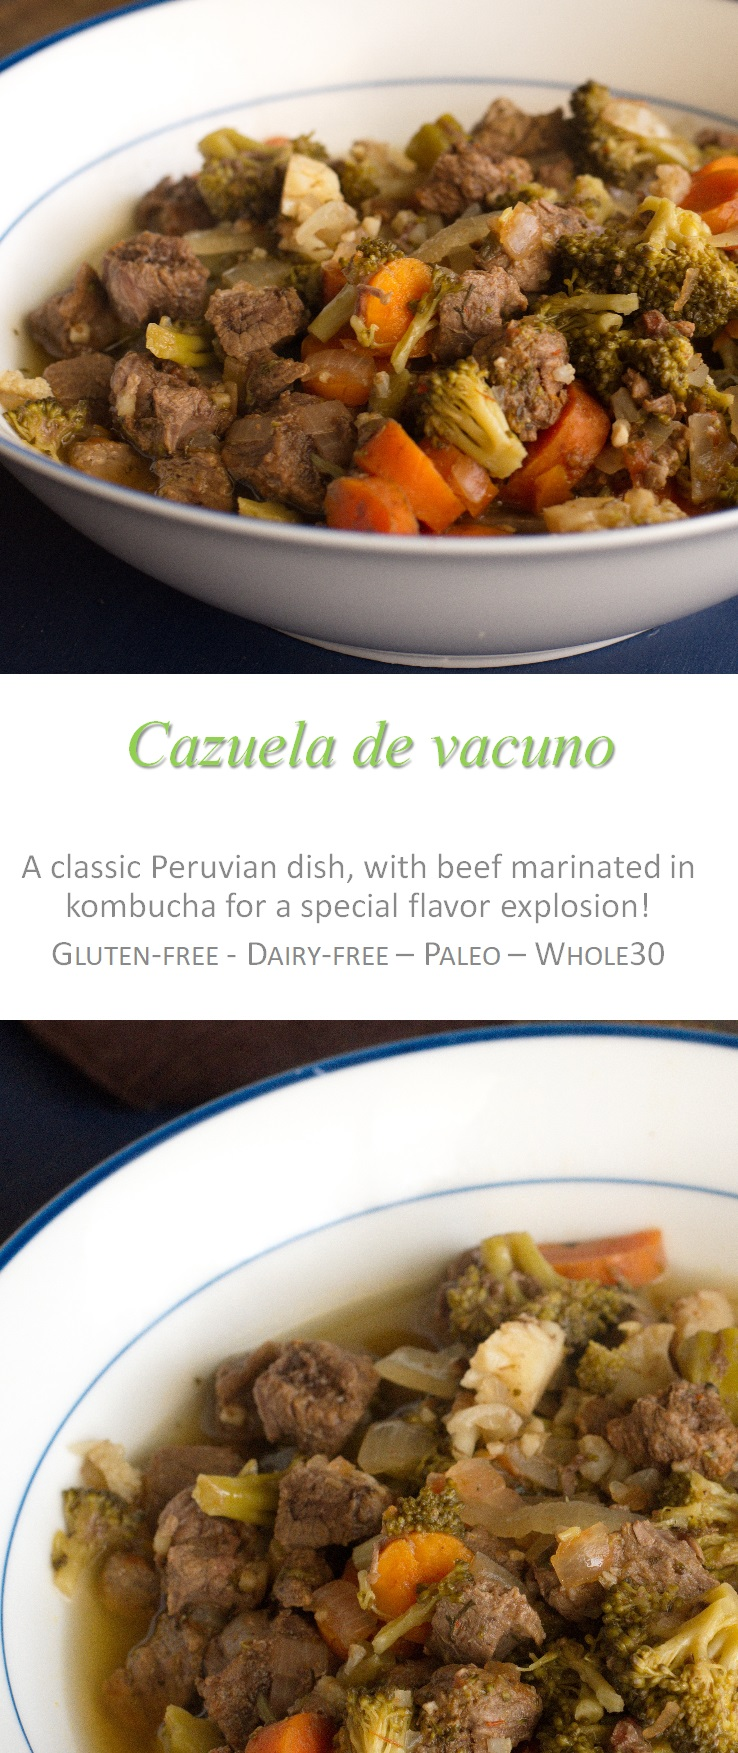 This cazuela de vacuno recipe is slightly different to normal - using kombucha as the main liquid ingredient and cooked in a slow cooker! #peruvianfood #cookathome #whole30 #glutenfree #dairyfree